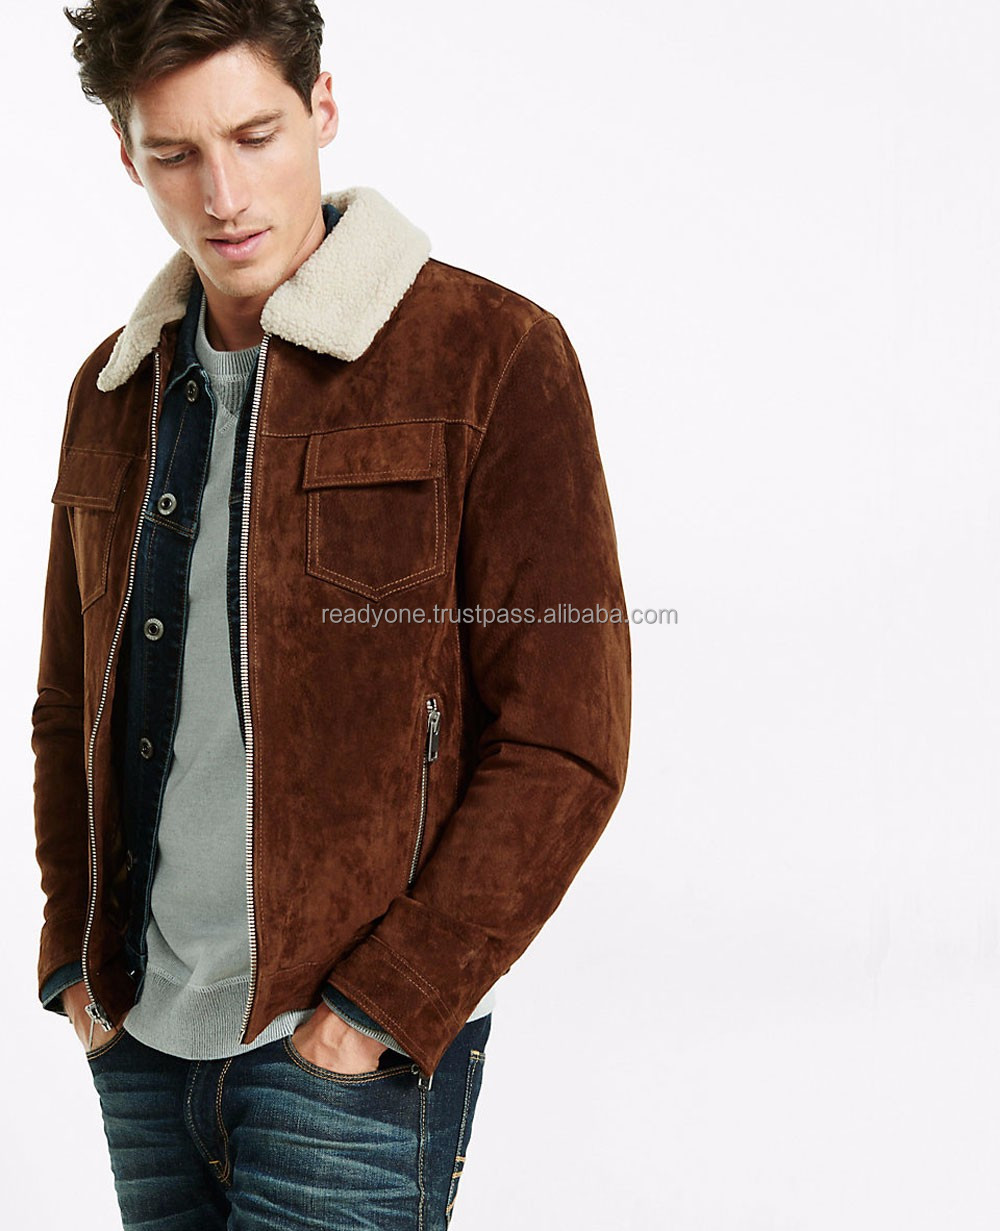 Suede leather bomber jacket for winter collections/wholesale at factory prices